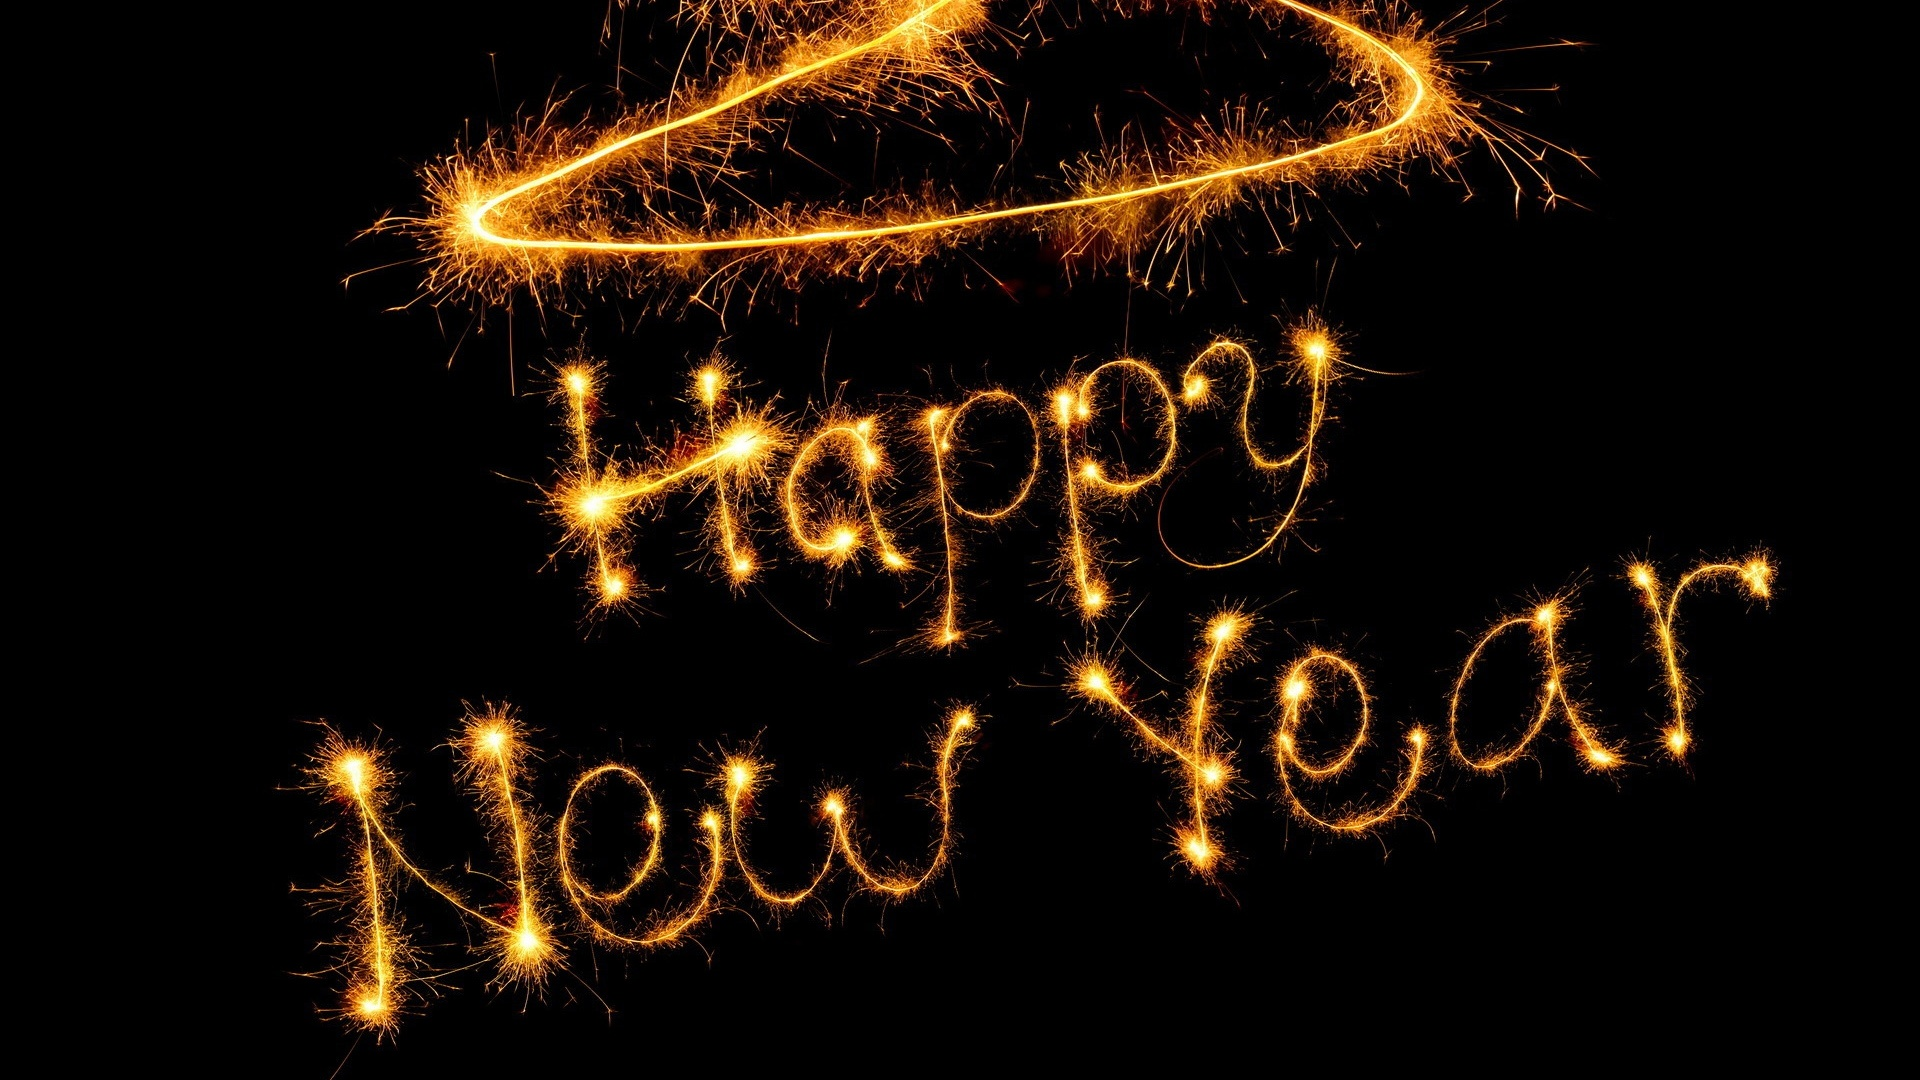 Wishing you a happy and Thoughtful new year